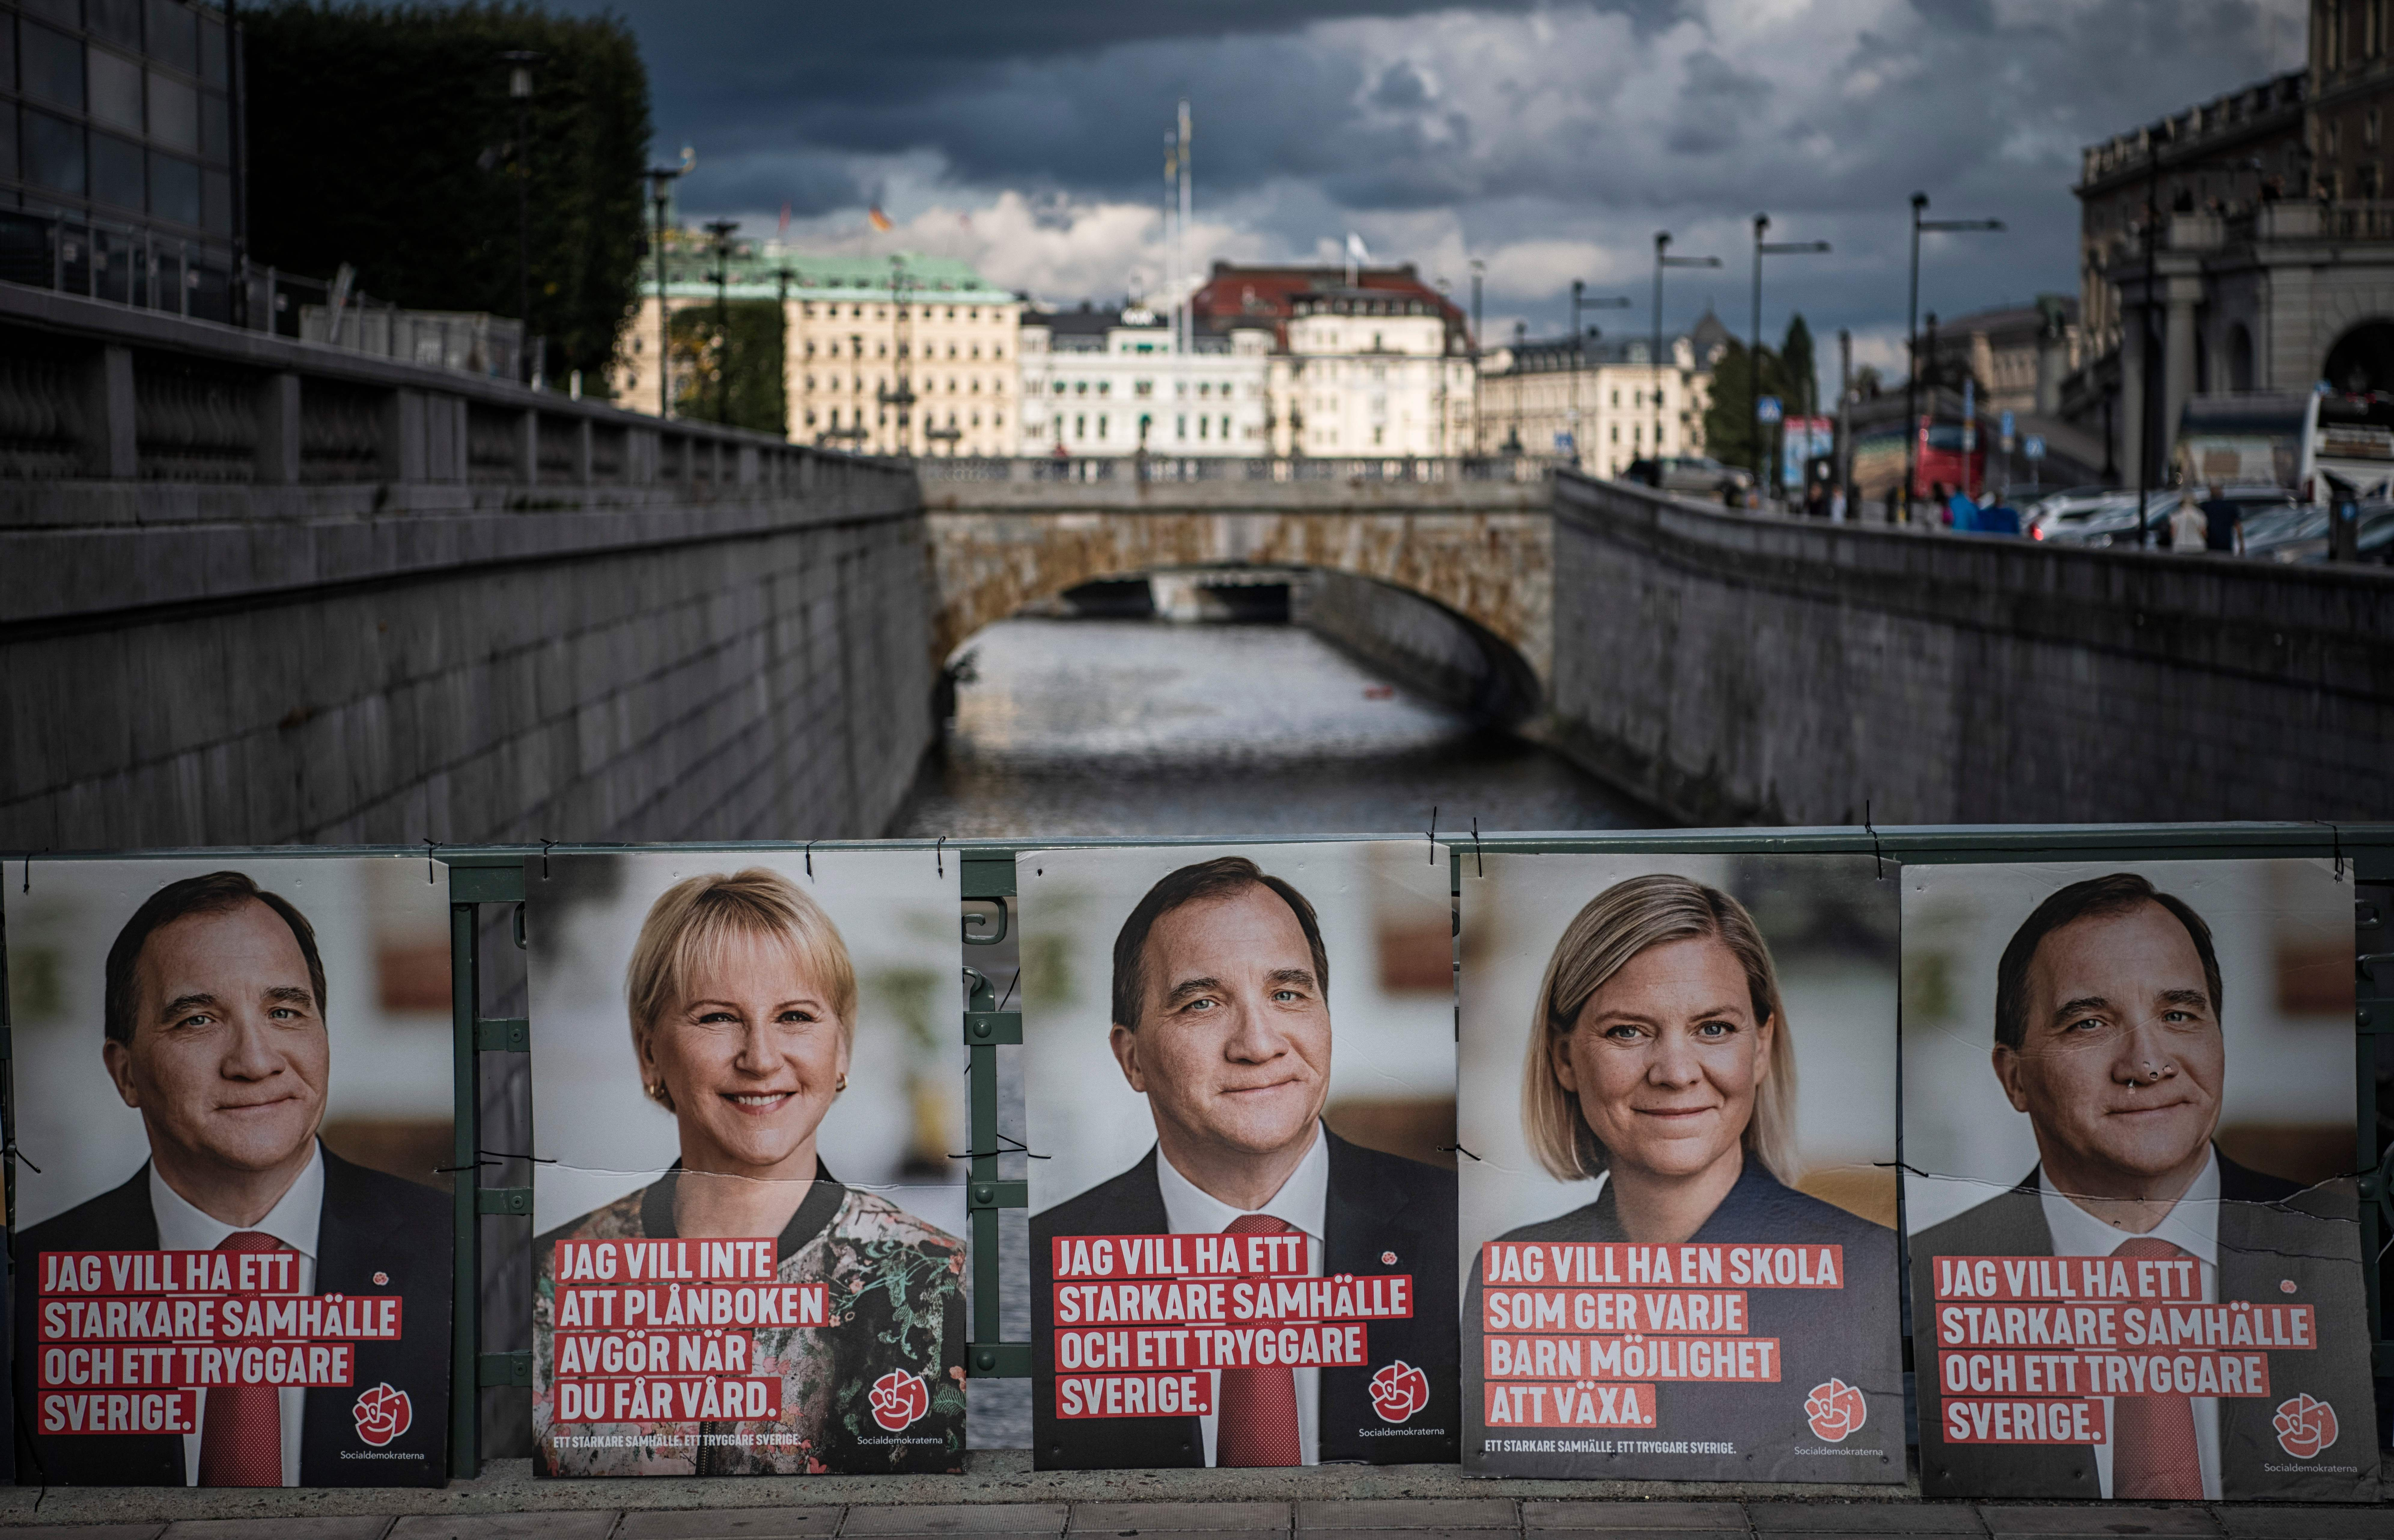 Election posters of the leader of the Social Democrats and Swedish Prime Minister Stefan Loefven, Swedish Minister for Finance Magdalena Andersson (2nd R) and Sweden's Foreign Minister Margot Wallstrom (2nd L) are pictured on September 1, 2018 in Stockholm.